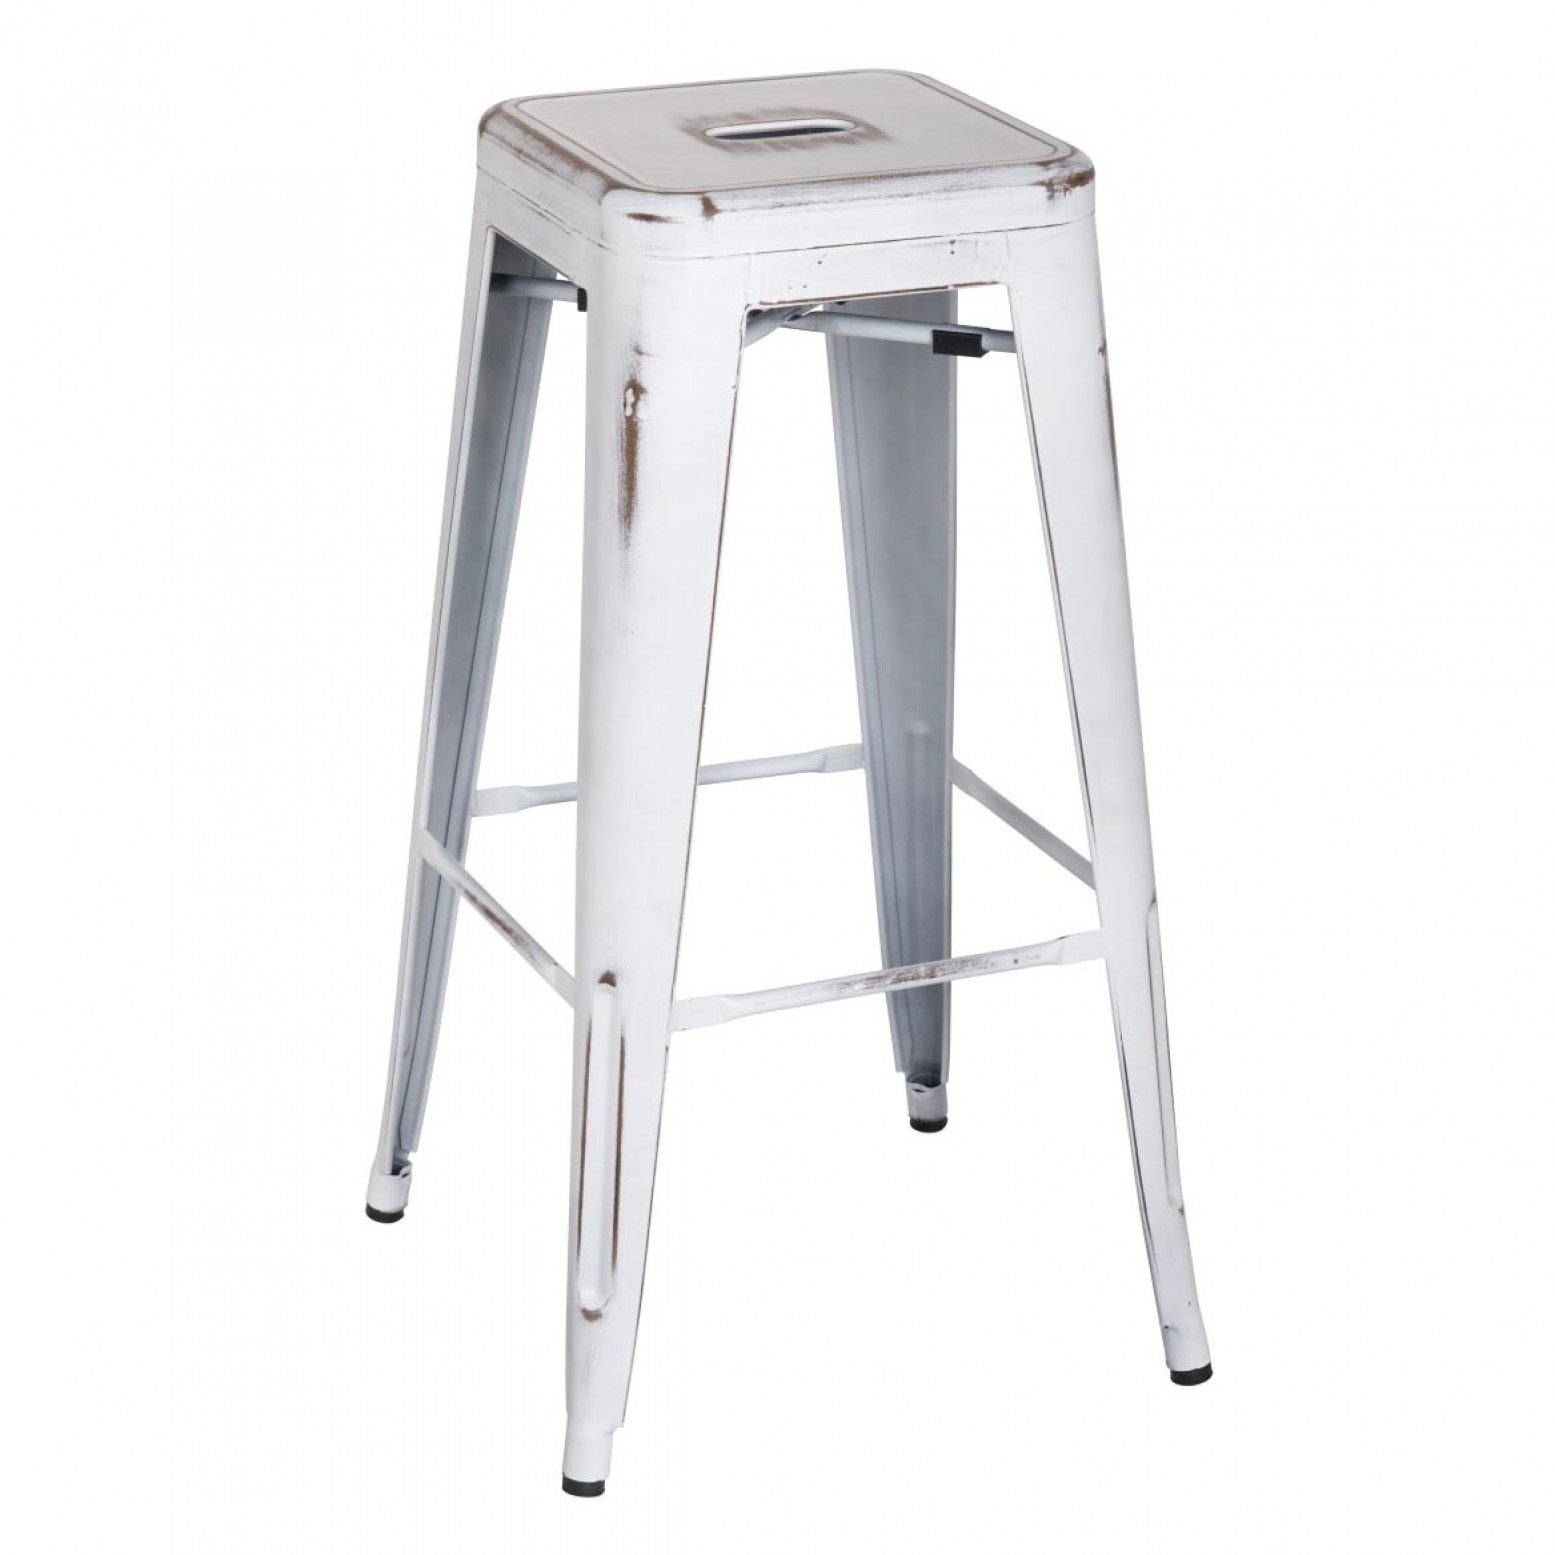 Strange Metropolis Metal Backless Bar Stool Distressed White Andrewgaddart Wooden Chair Designs For Living Room Andrewgaddartcom